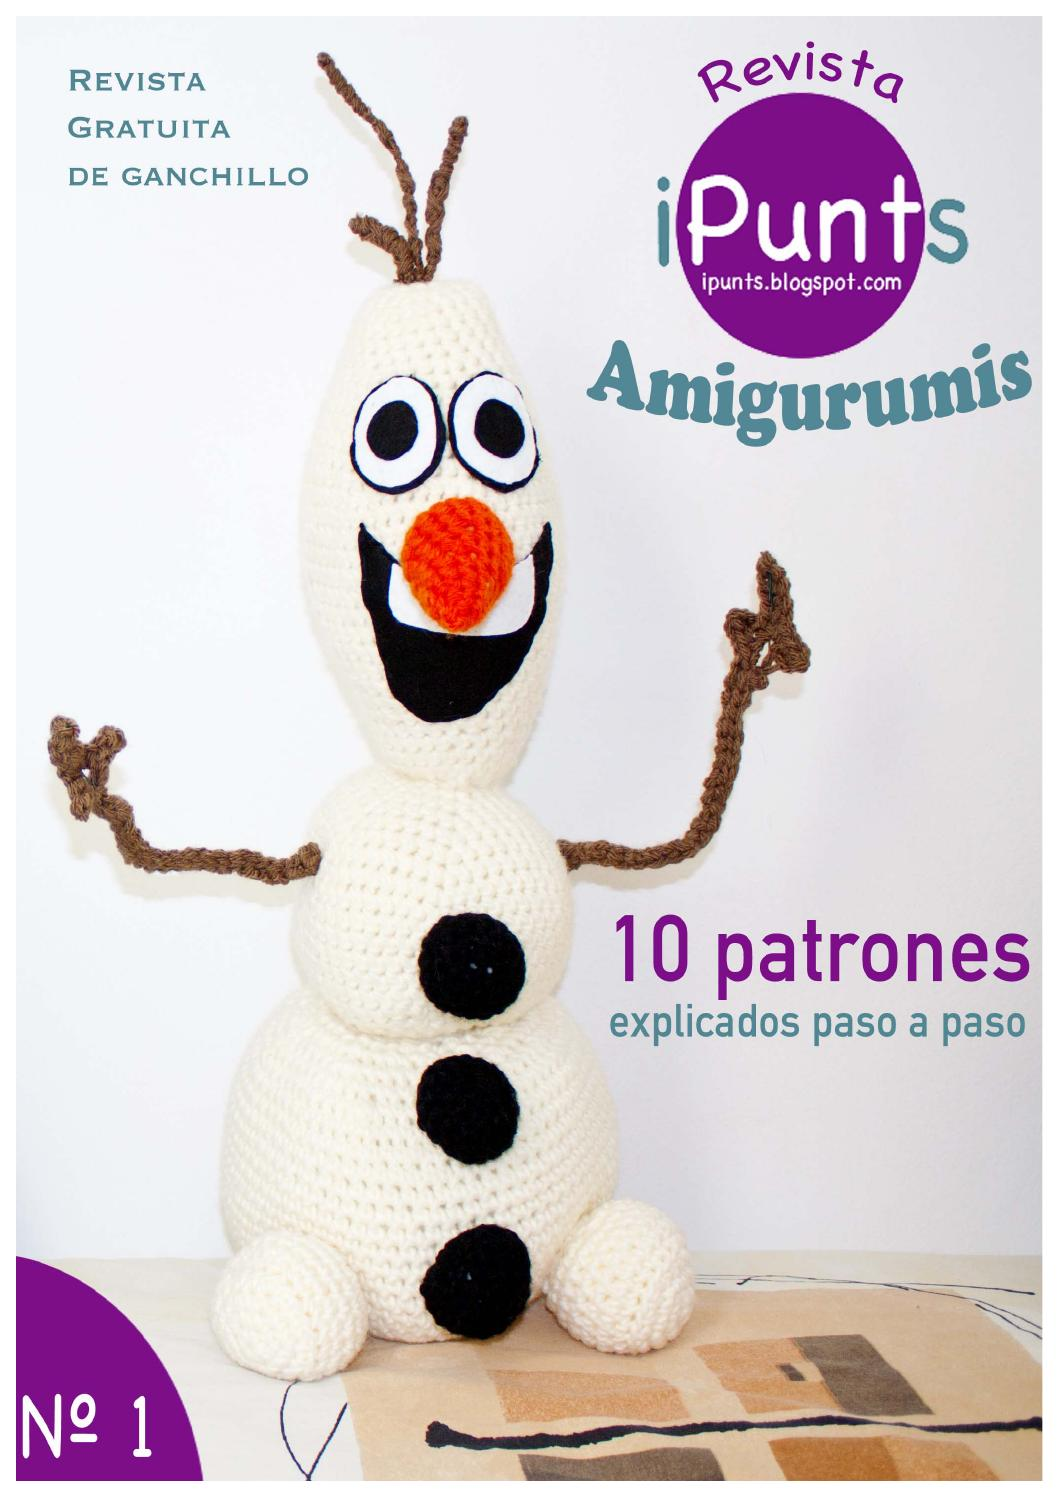 Revista ipunts amigurumis by ipunts agujas y ganchillo - issuu